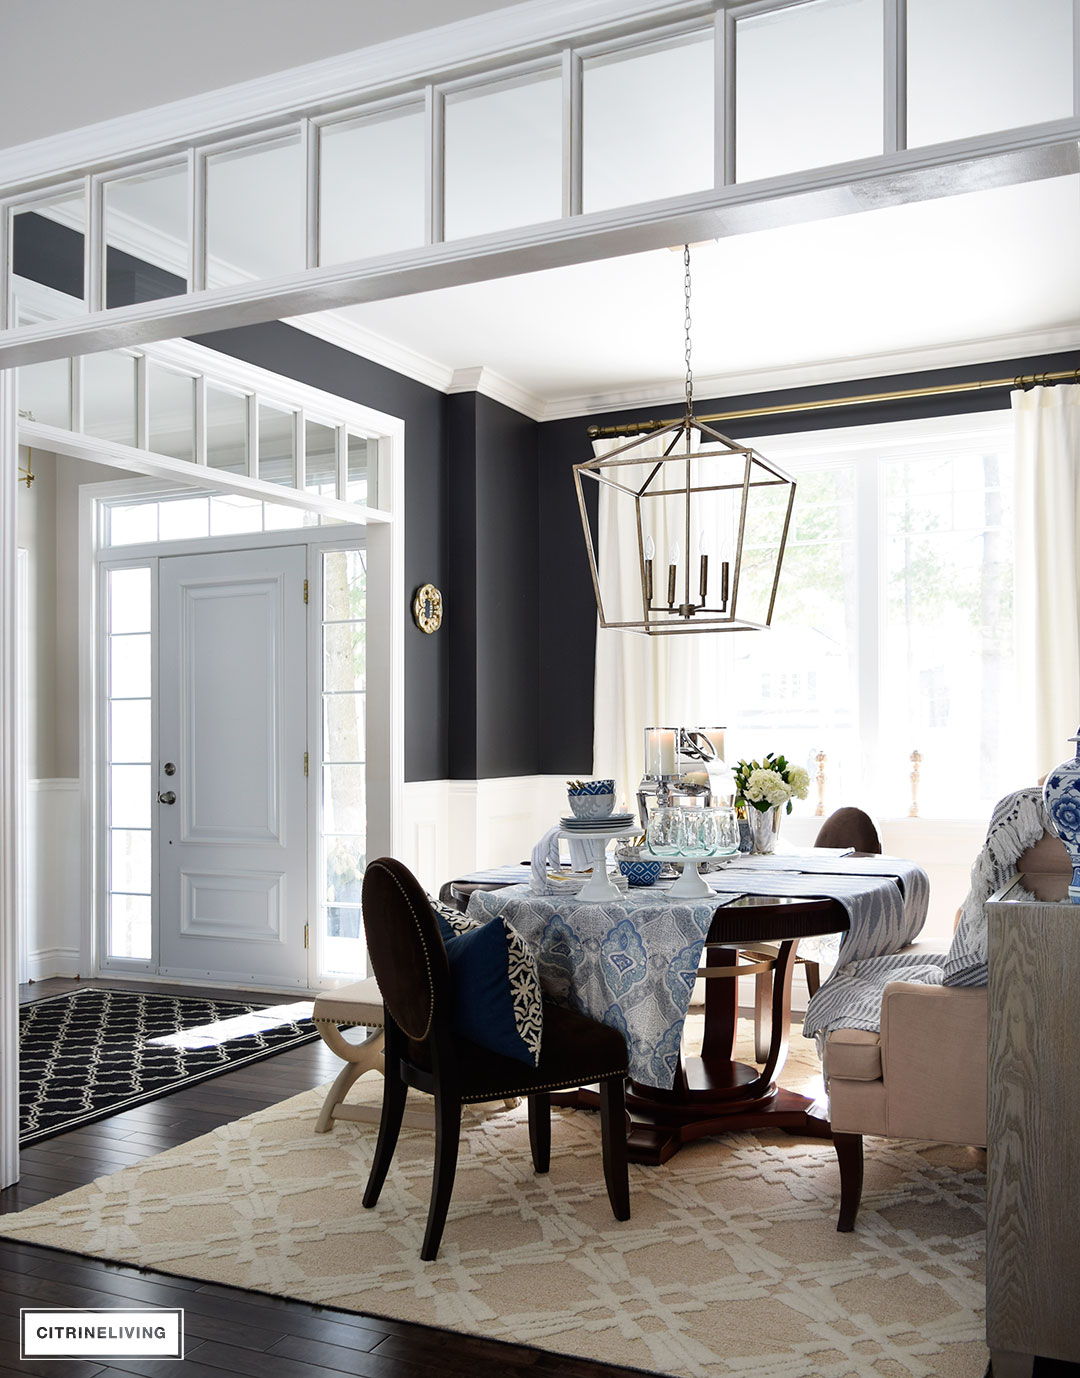 Spring decor - a fresh mix of blue and white pattern and texture is perfect for the season.